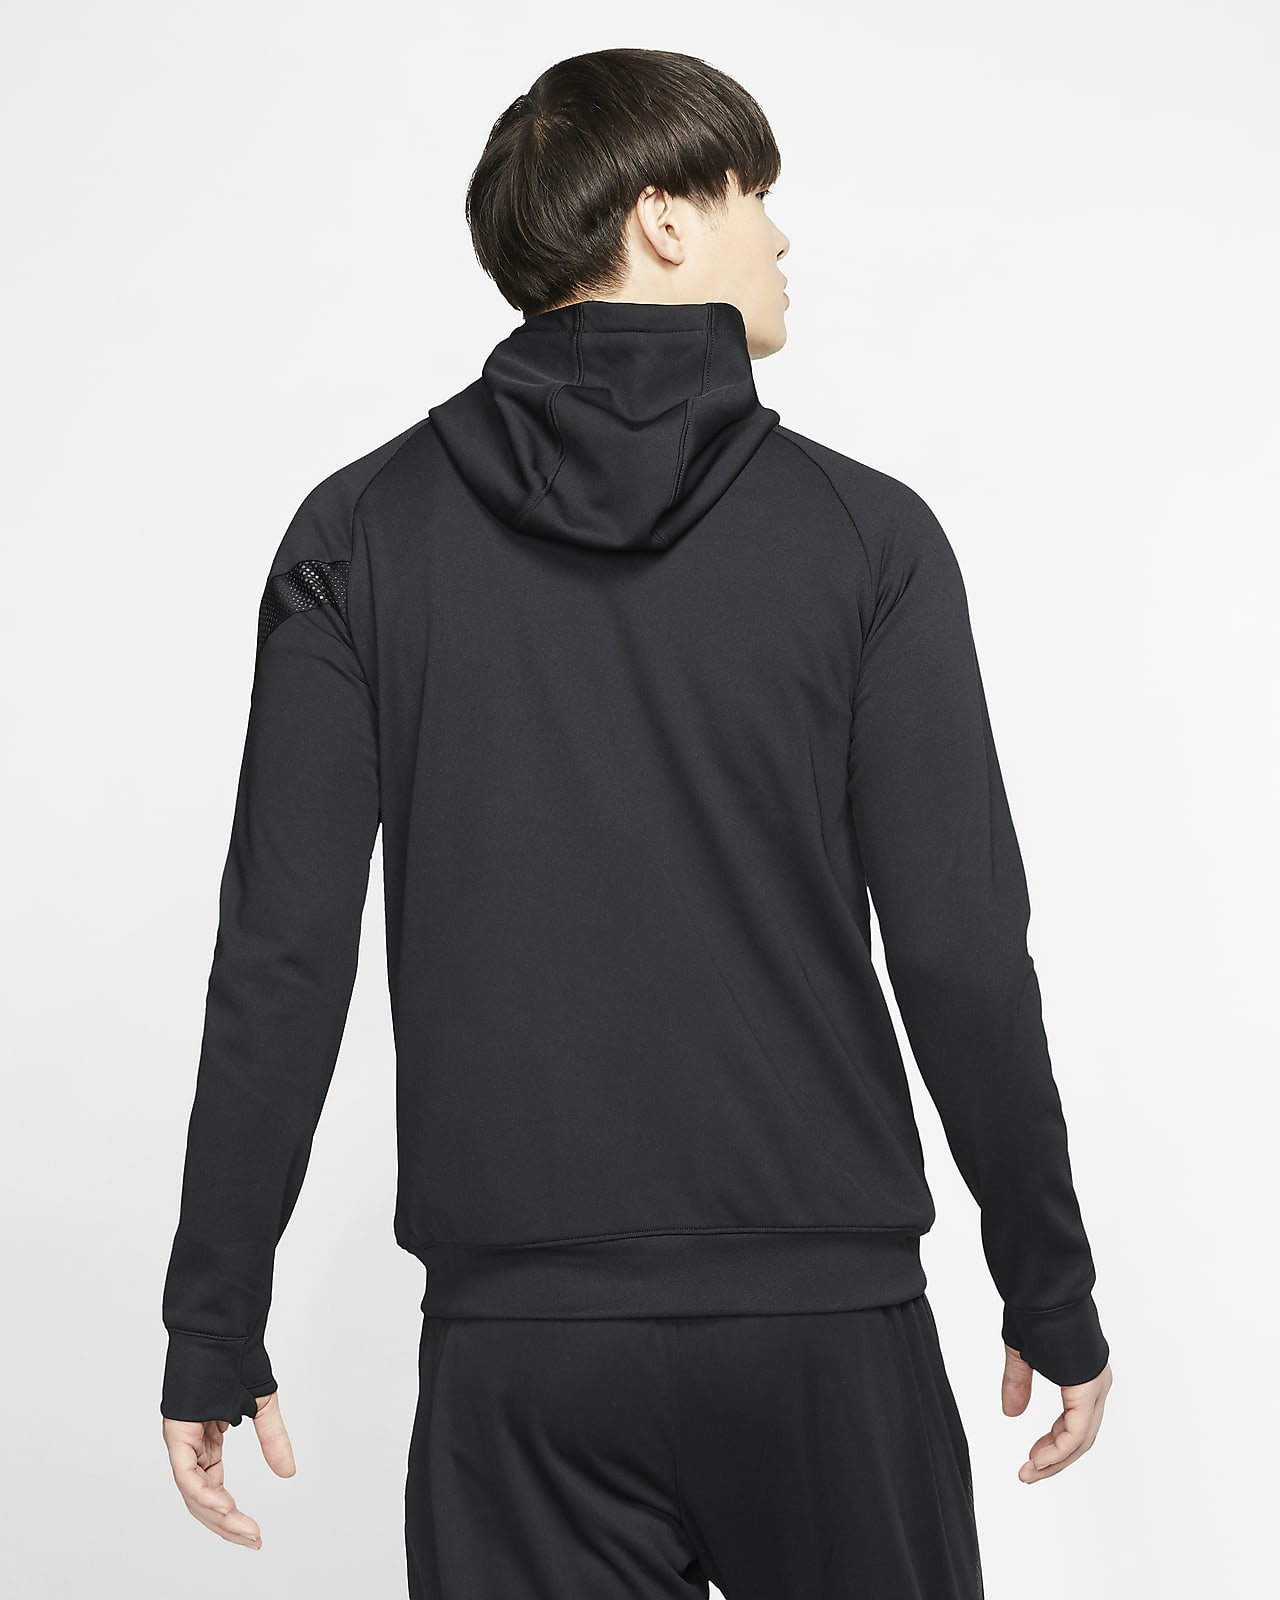 Nike Dri FIT Academy Pro Men's Pullover Football Hoodie